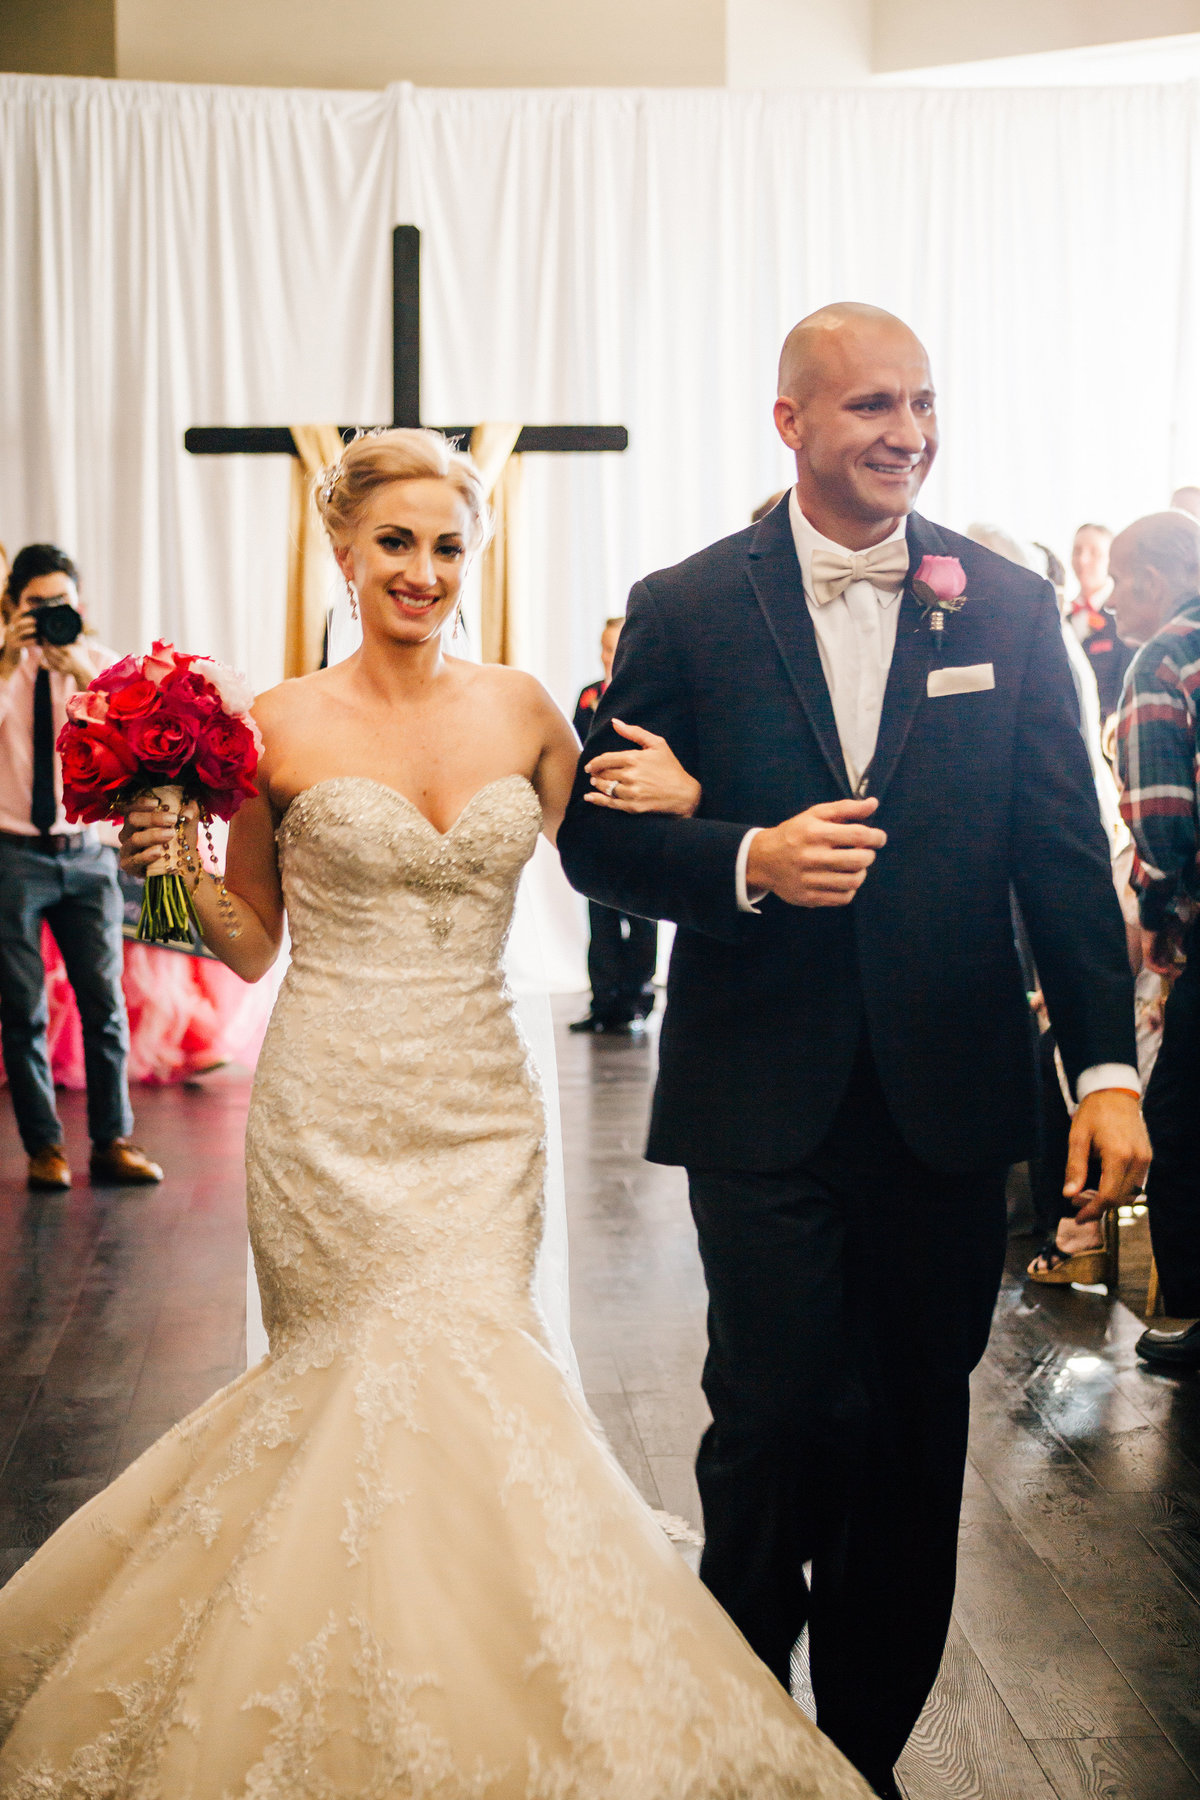 Kimberly_Hoyle_Photography_Milam_The_Back_Center_Melbourne_Wedding-36